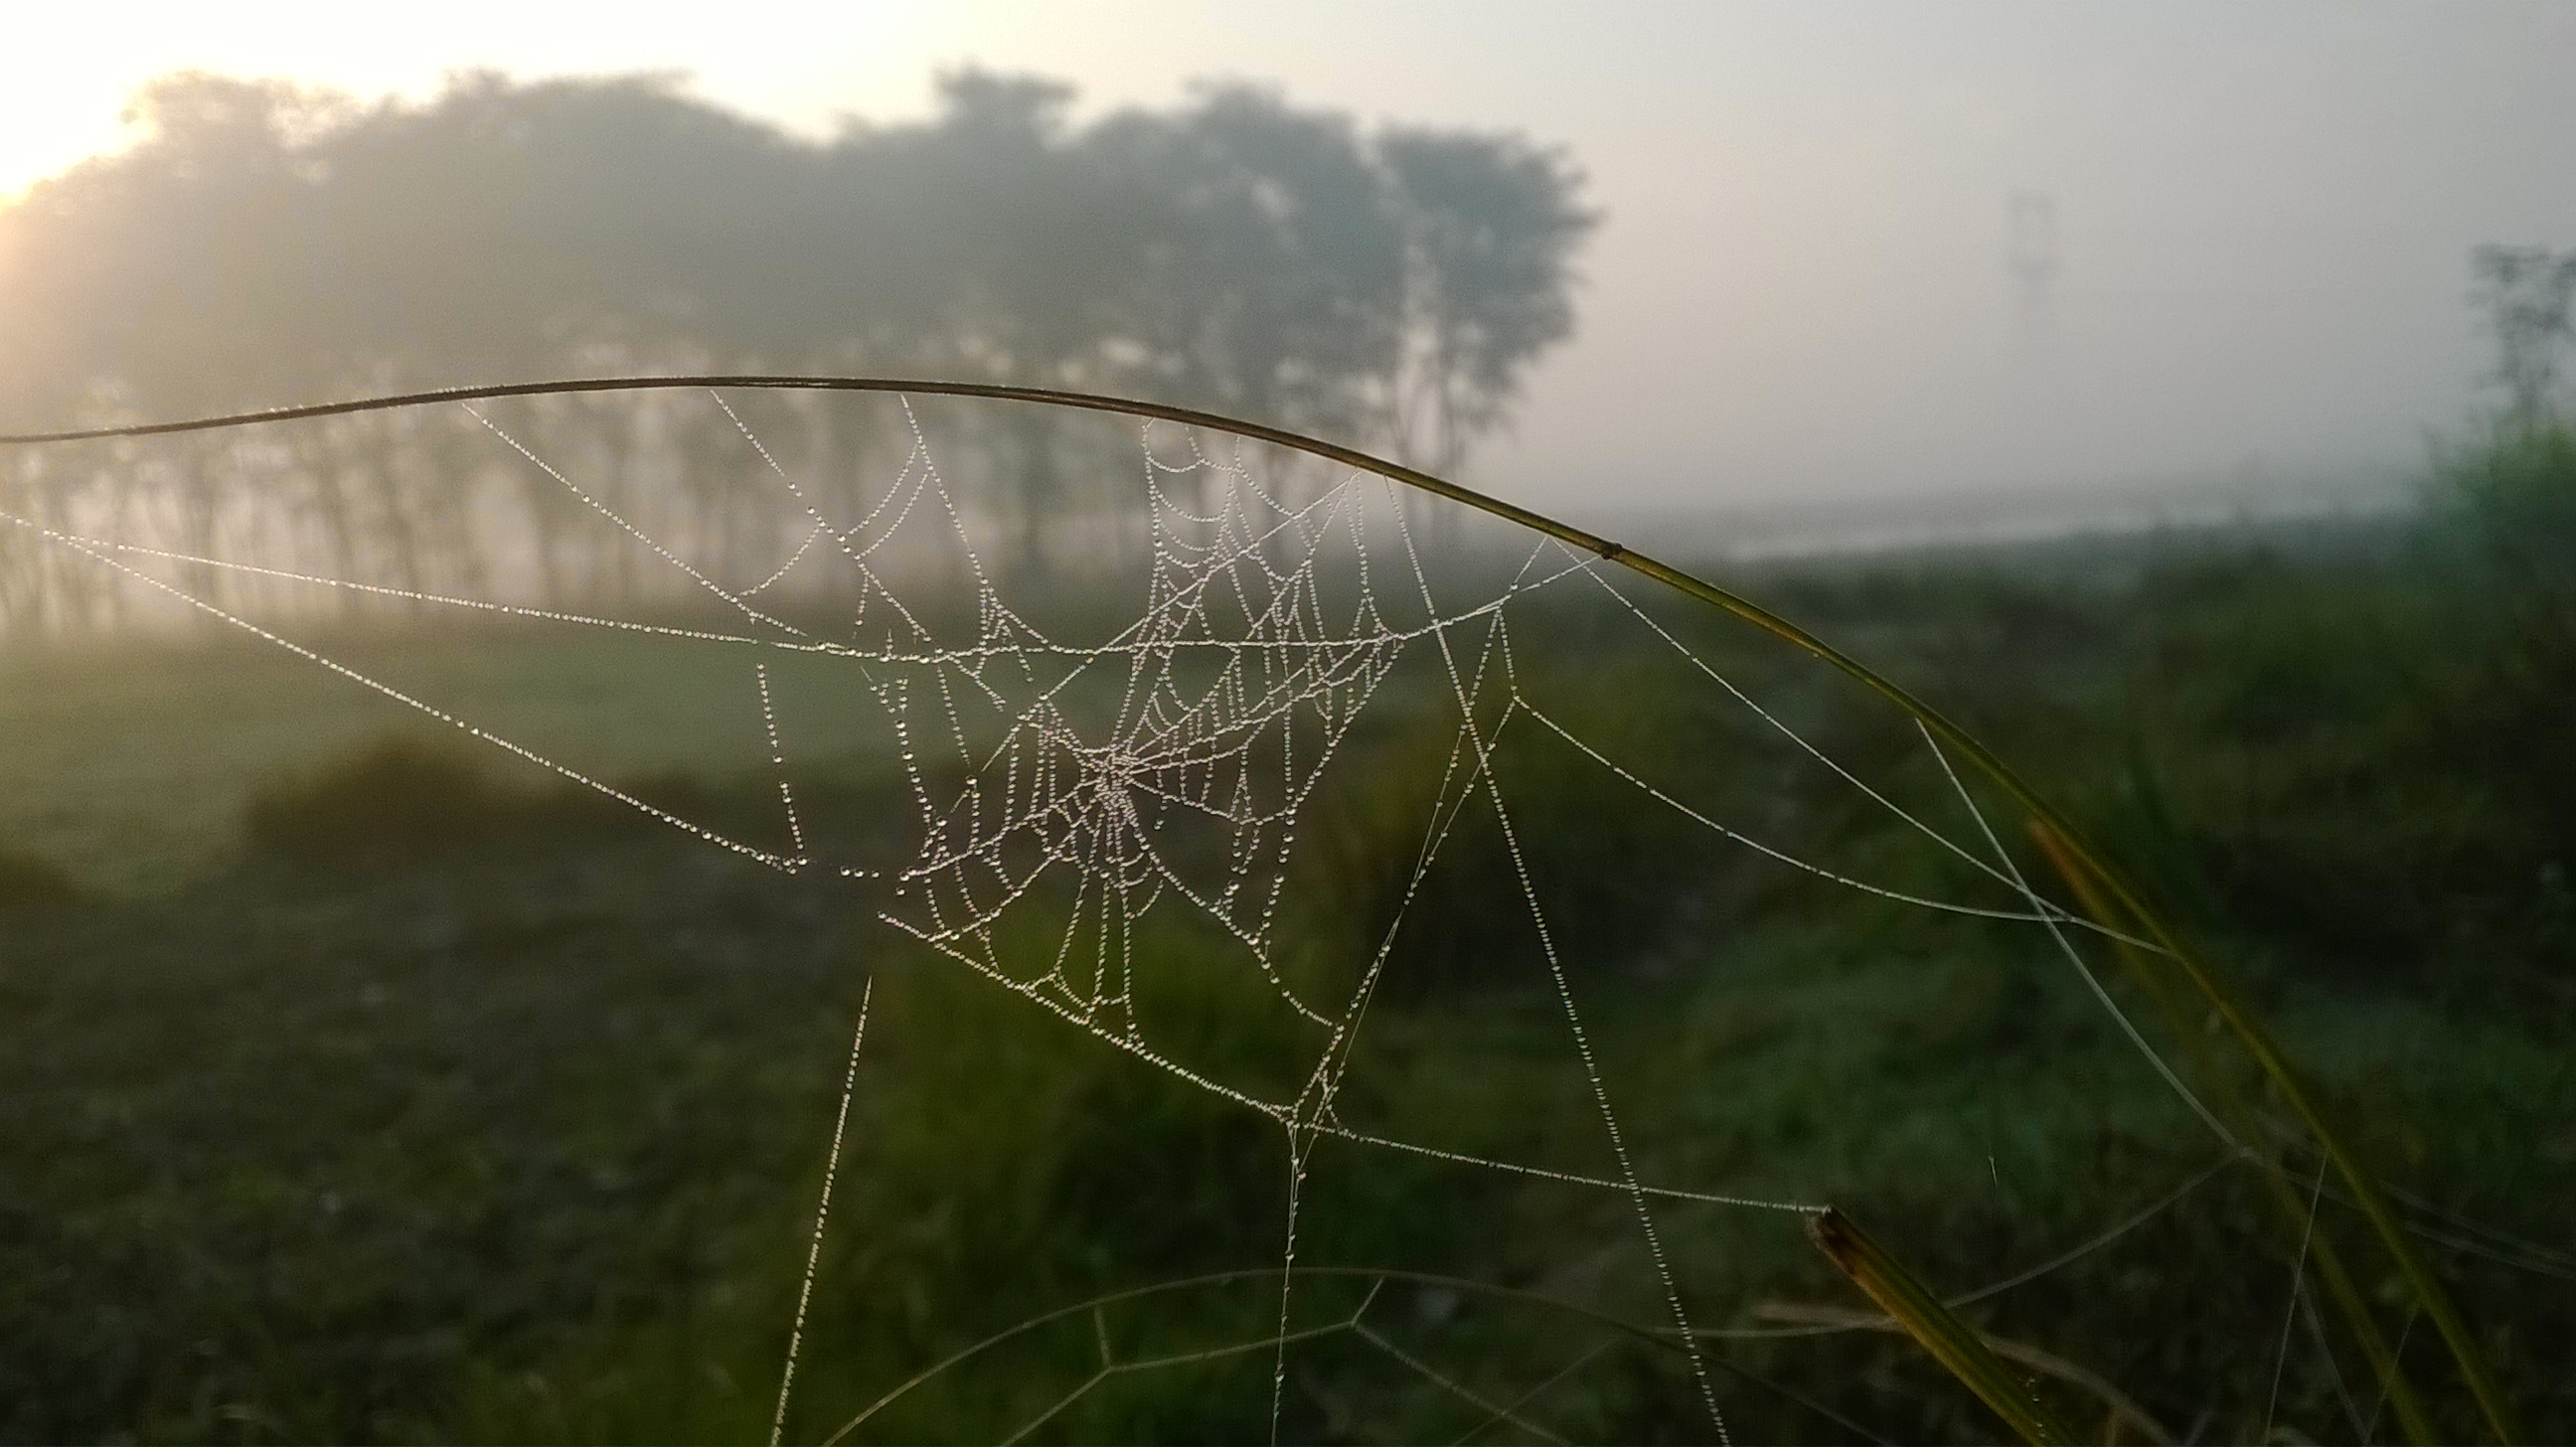 Webs @ Early Morning